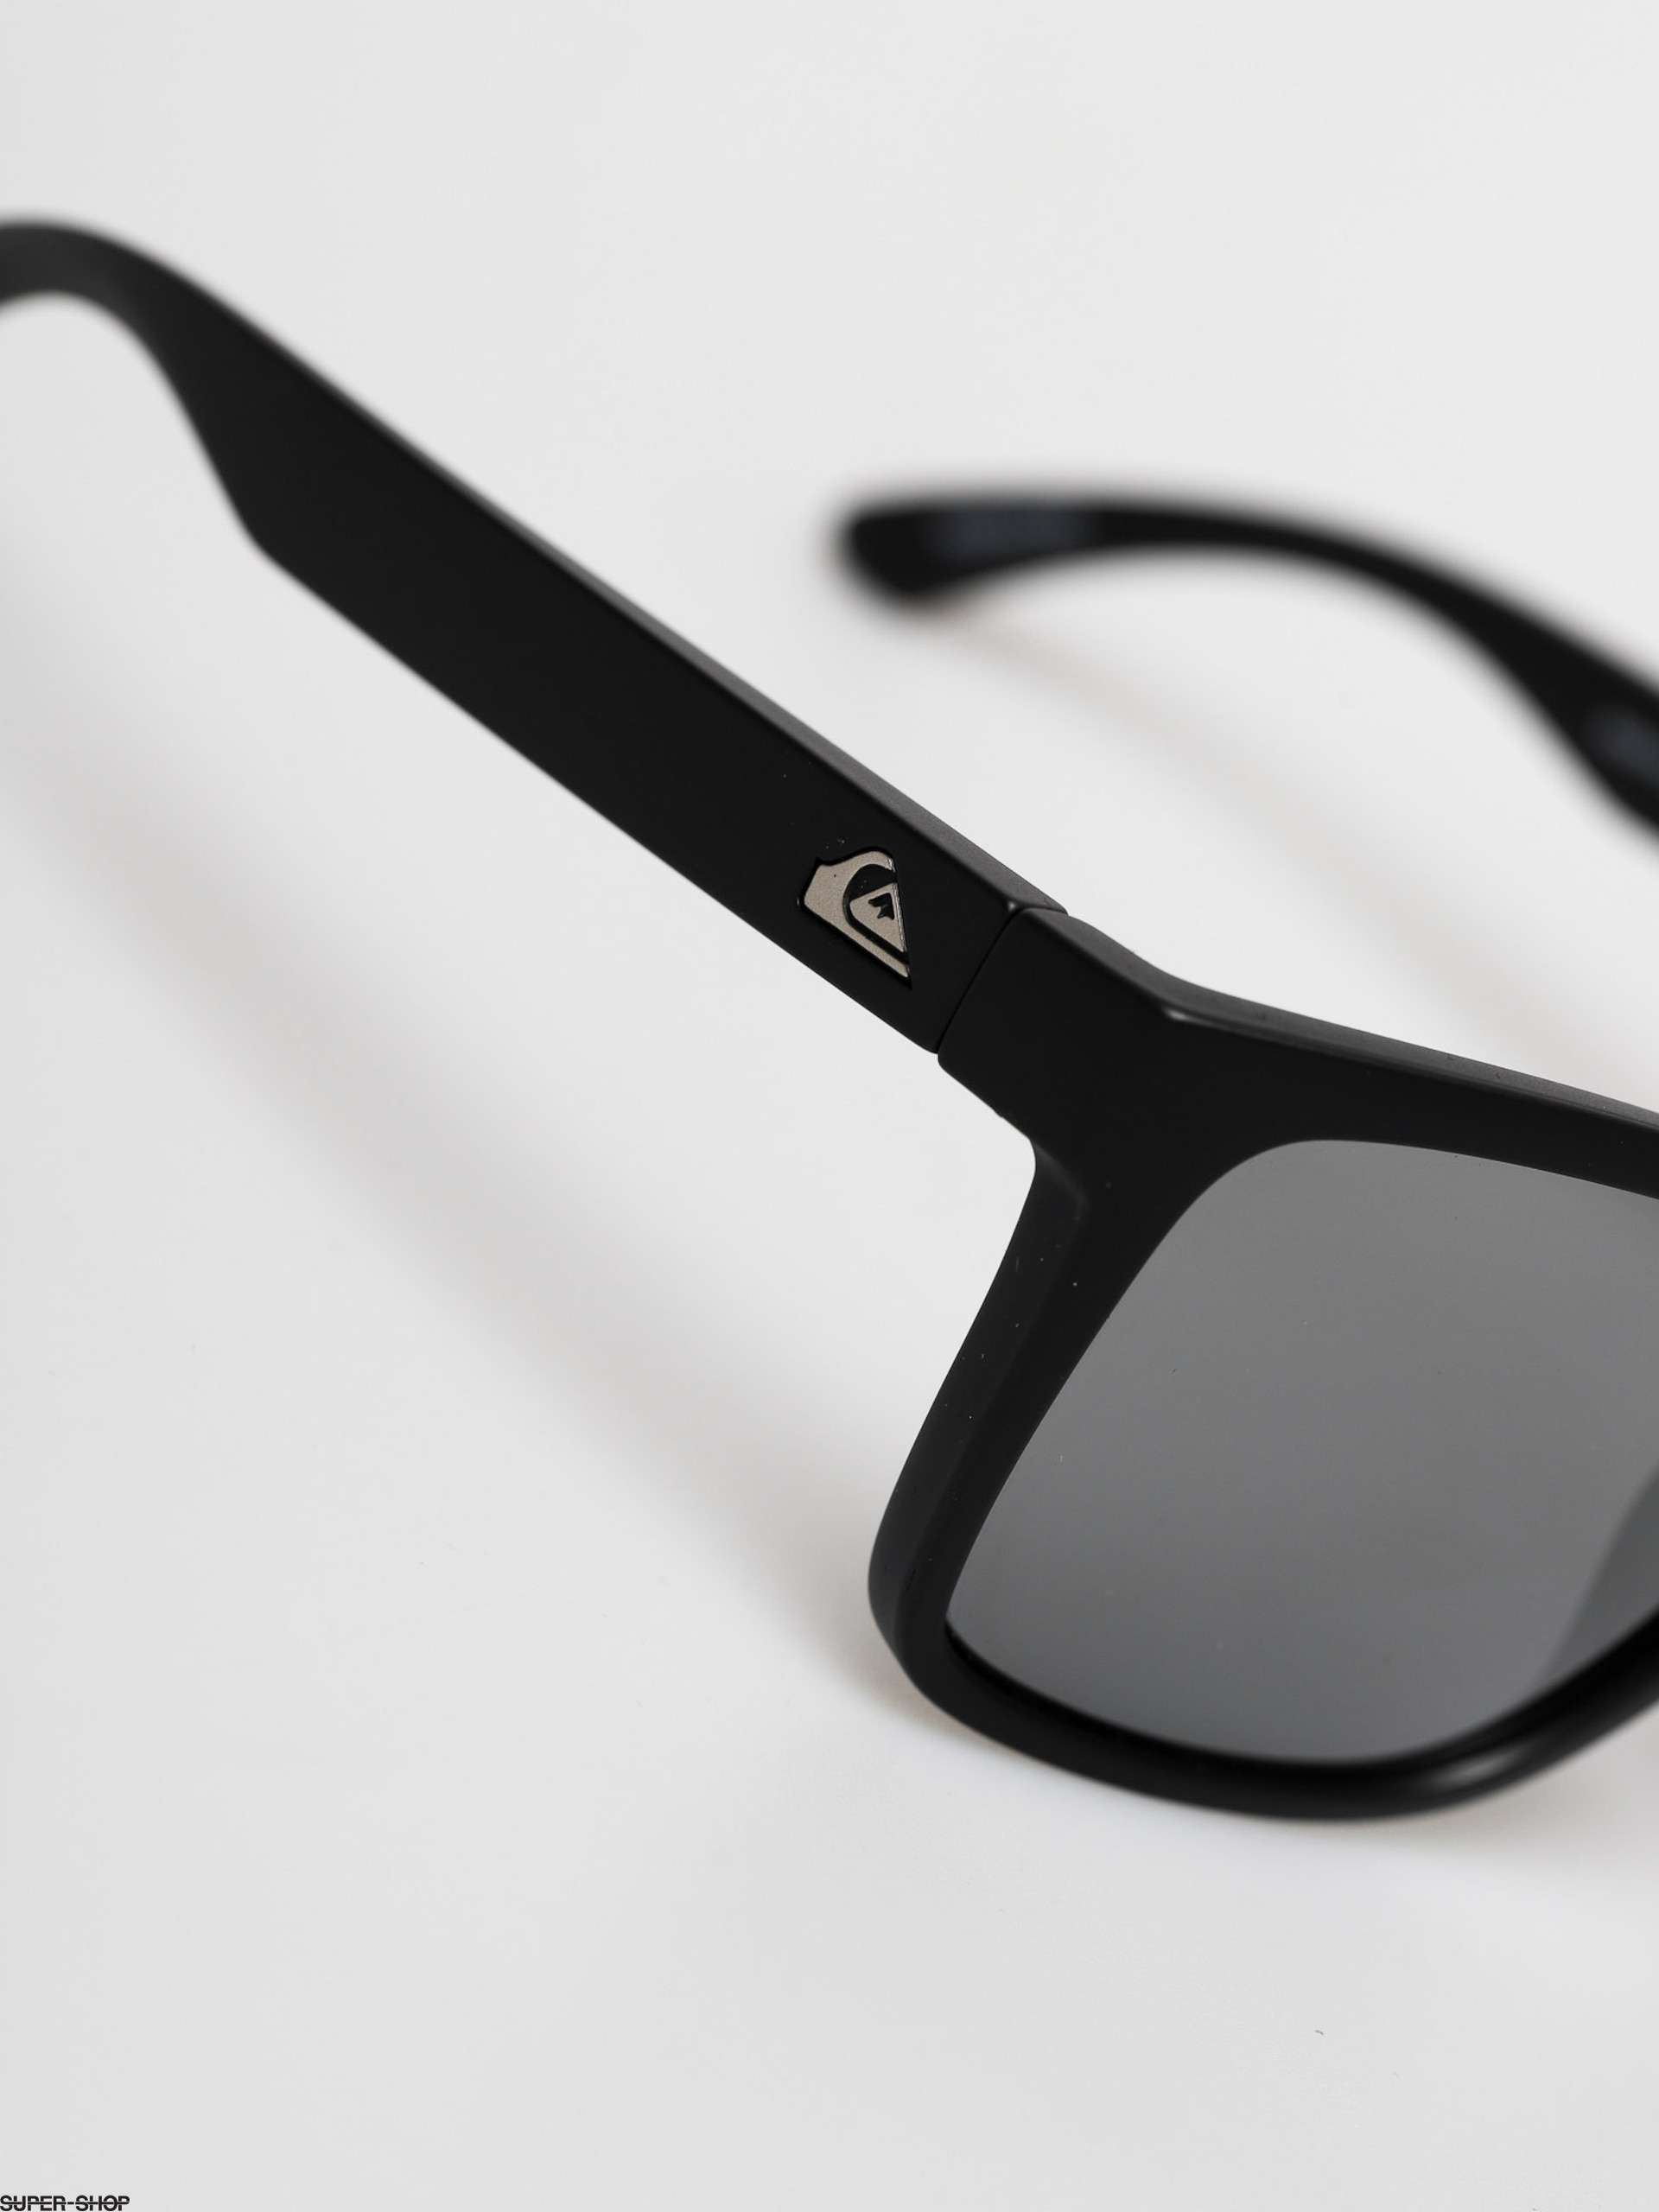 Quiksilver Charger Sunglasses Matte Black Flash Si